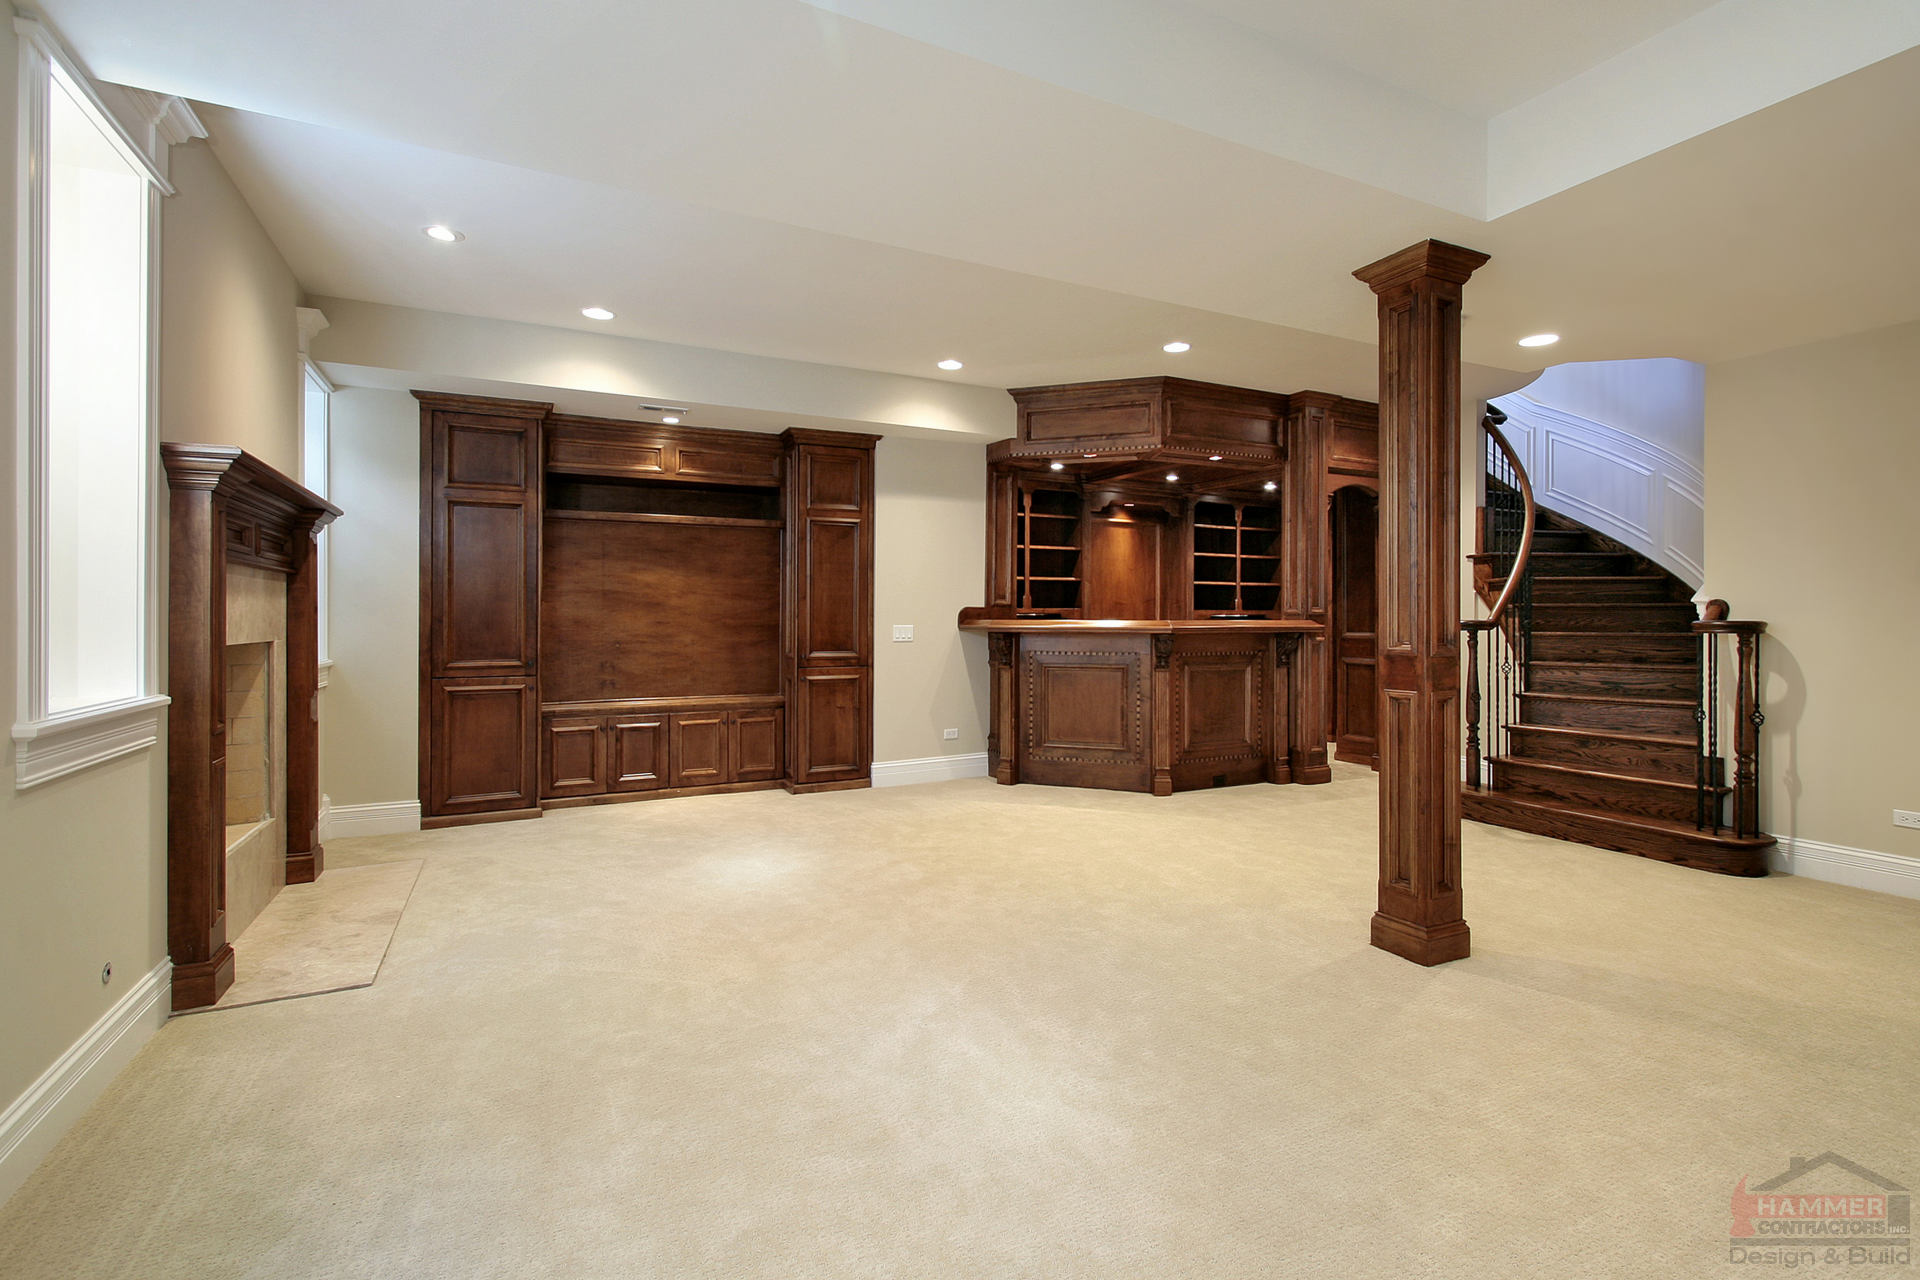 Remodeling Basement Ideas Room Design Ideas For Your Basement Finishing Project